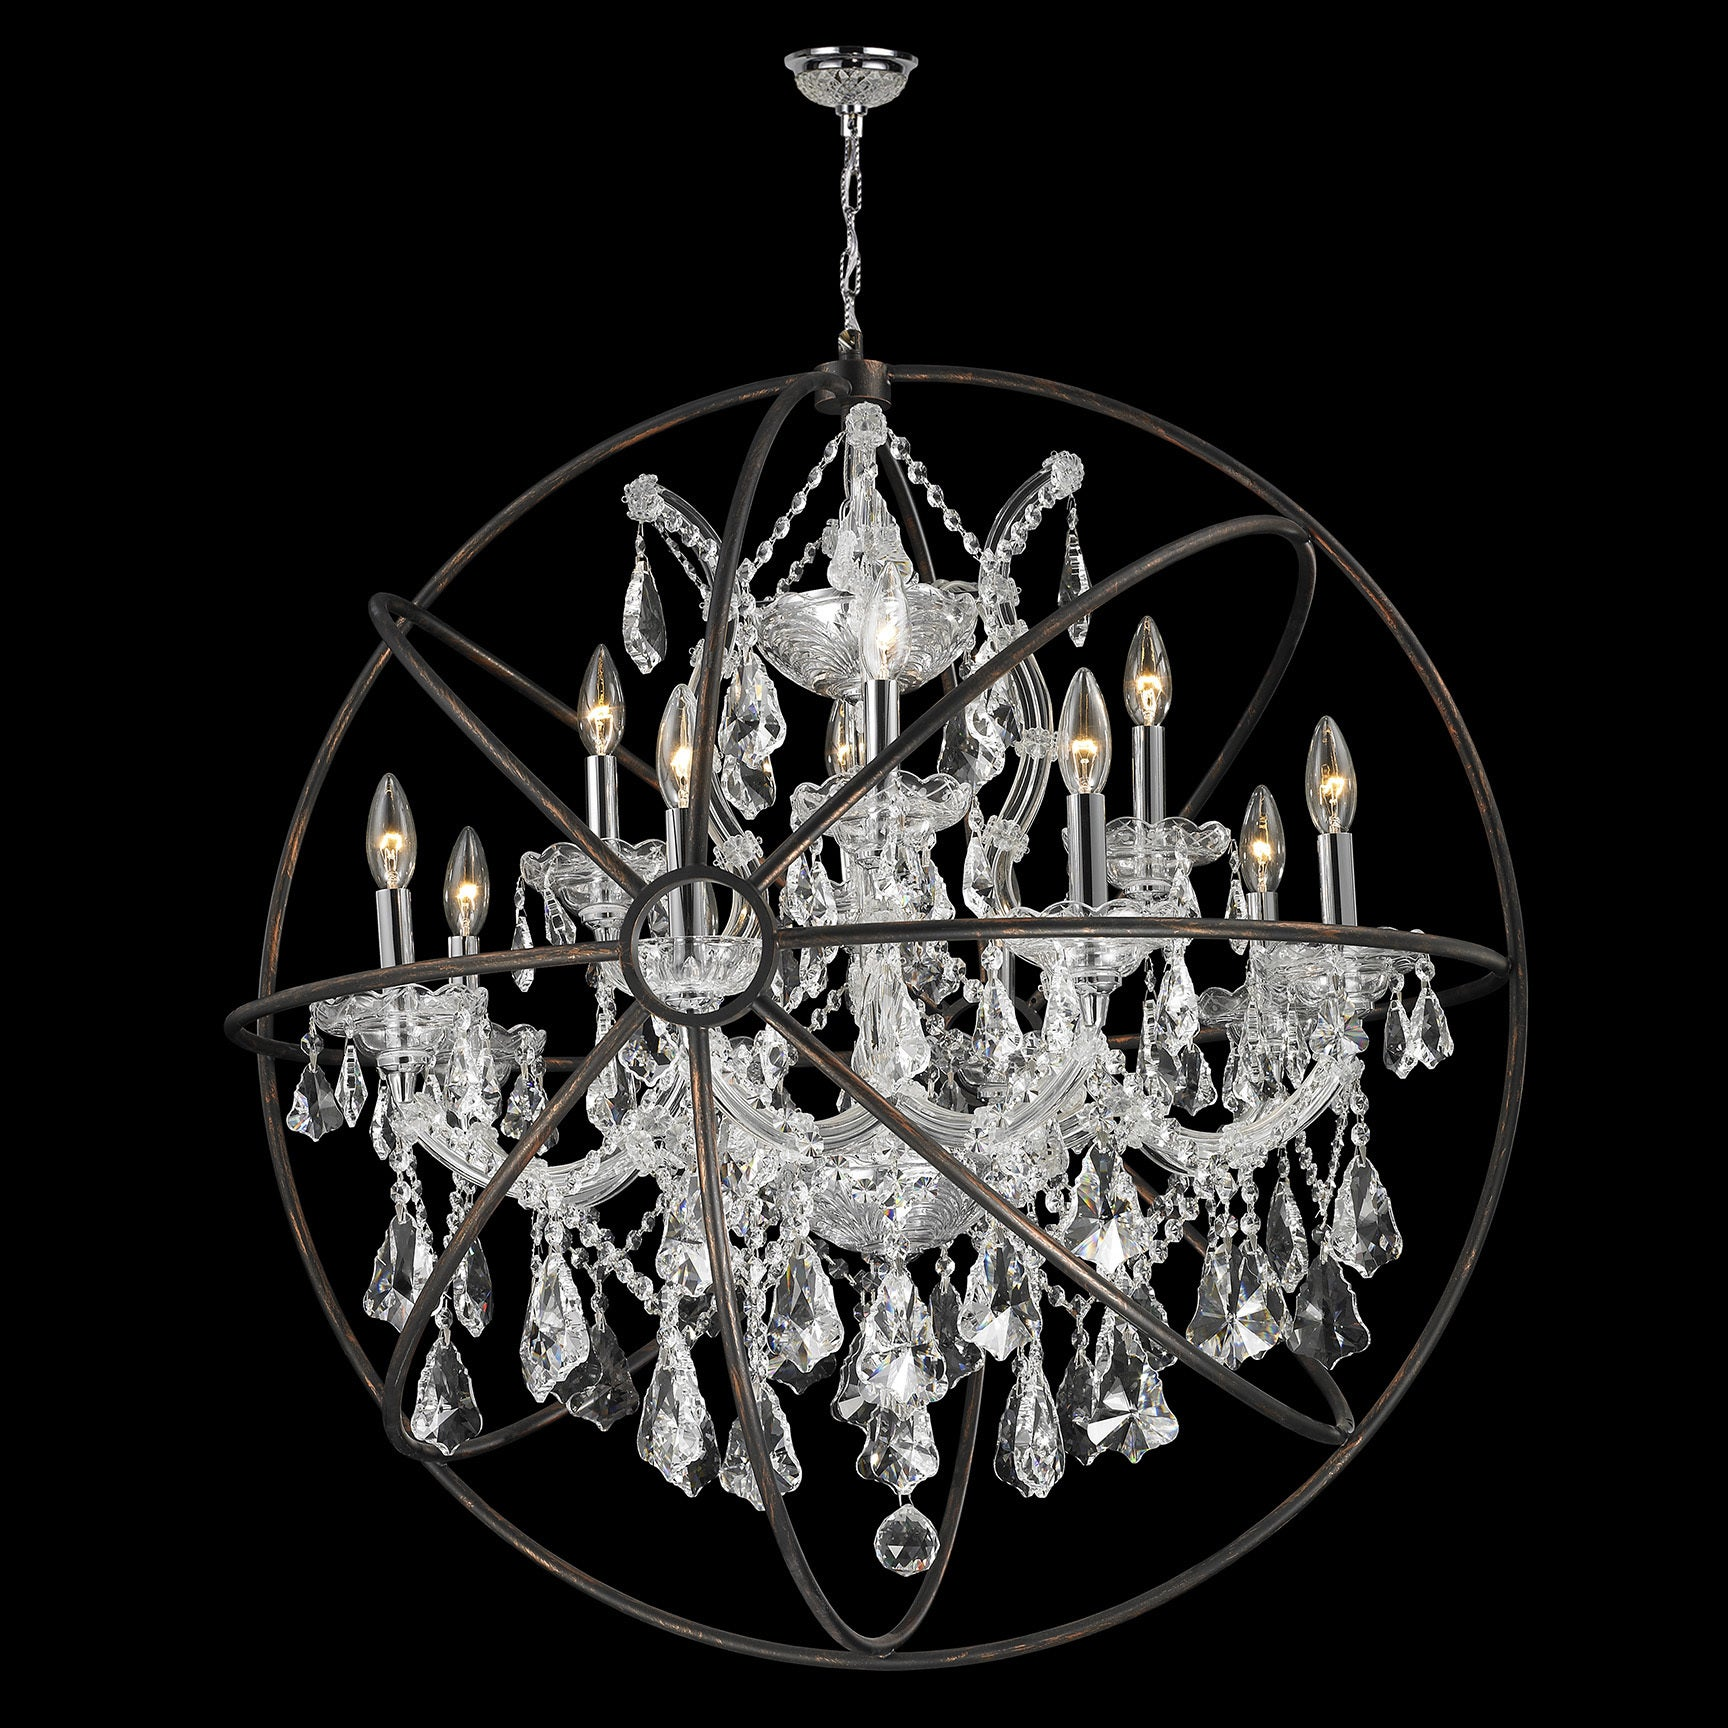 Foucault s Orb Chandelier 13 light Chrome Finish and Clear Crystal